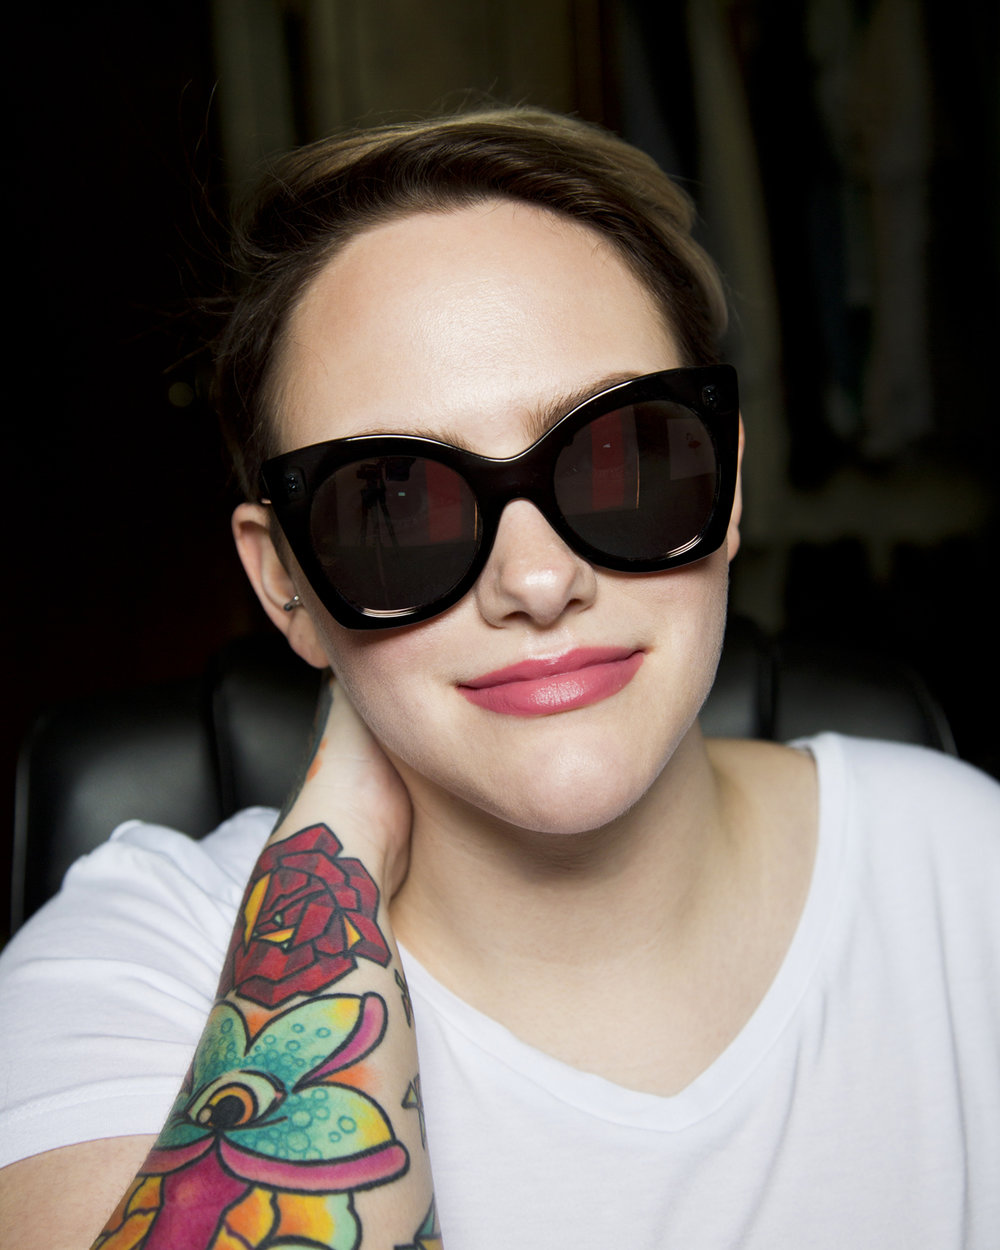 69abde837d Sunglasses Collection — Heather A. Turner